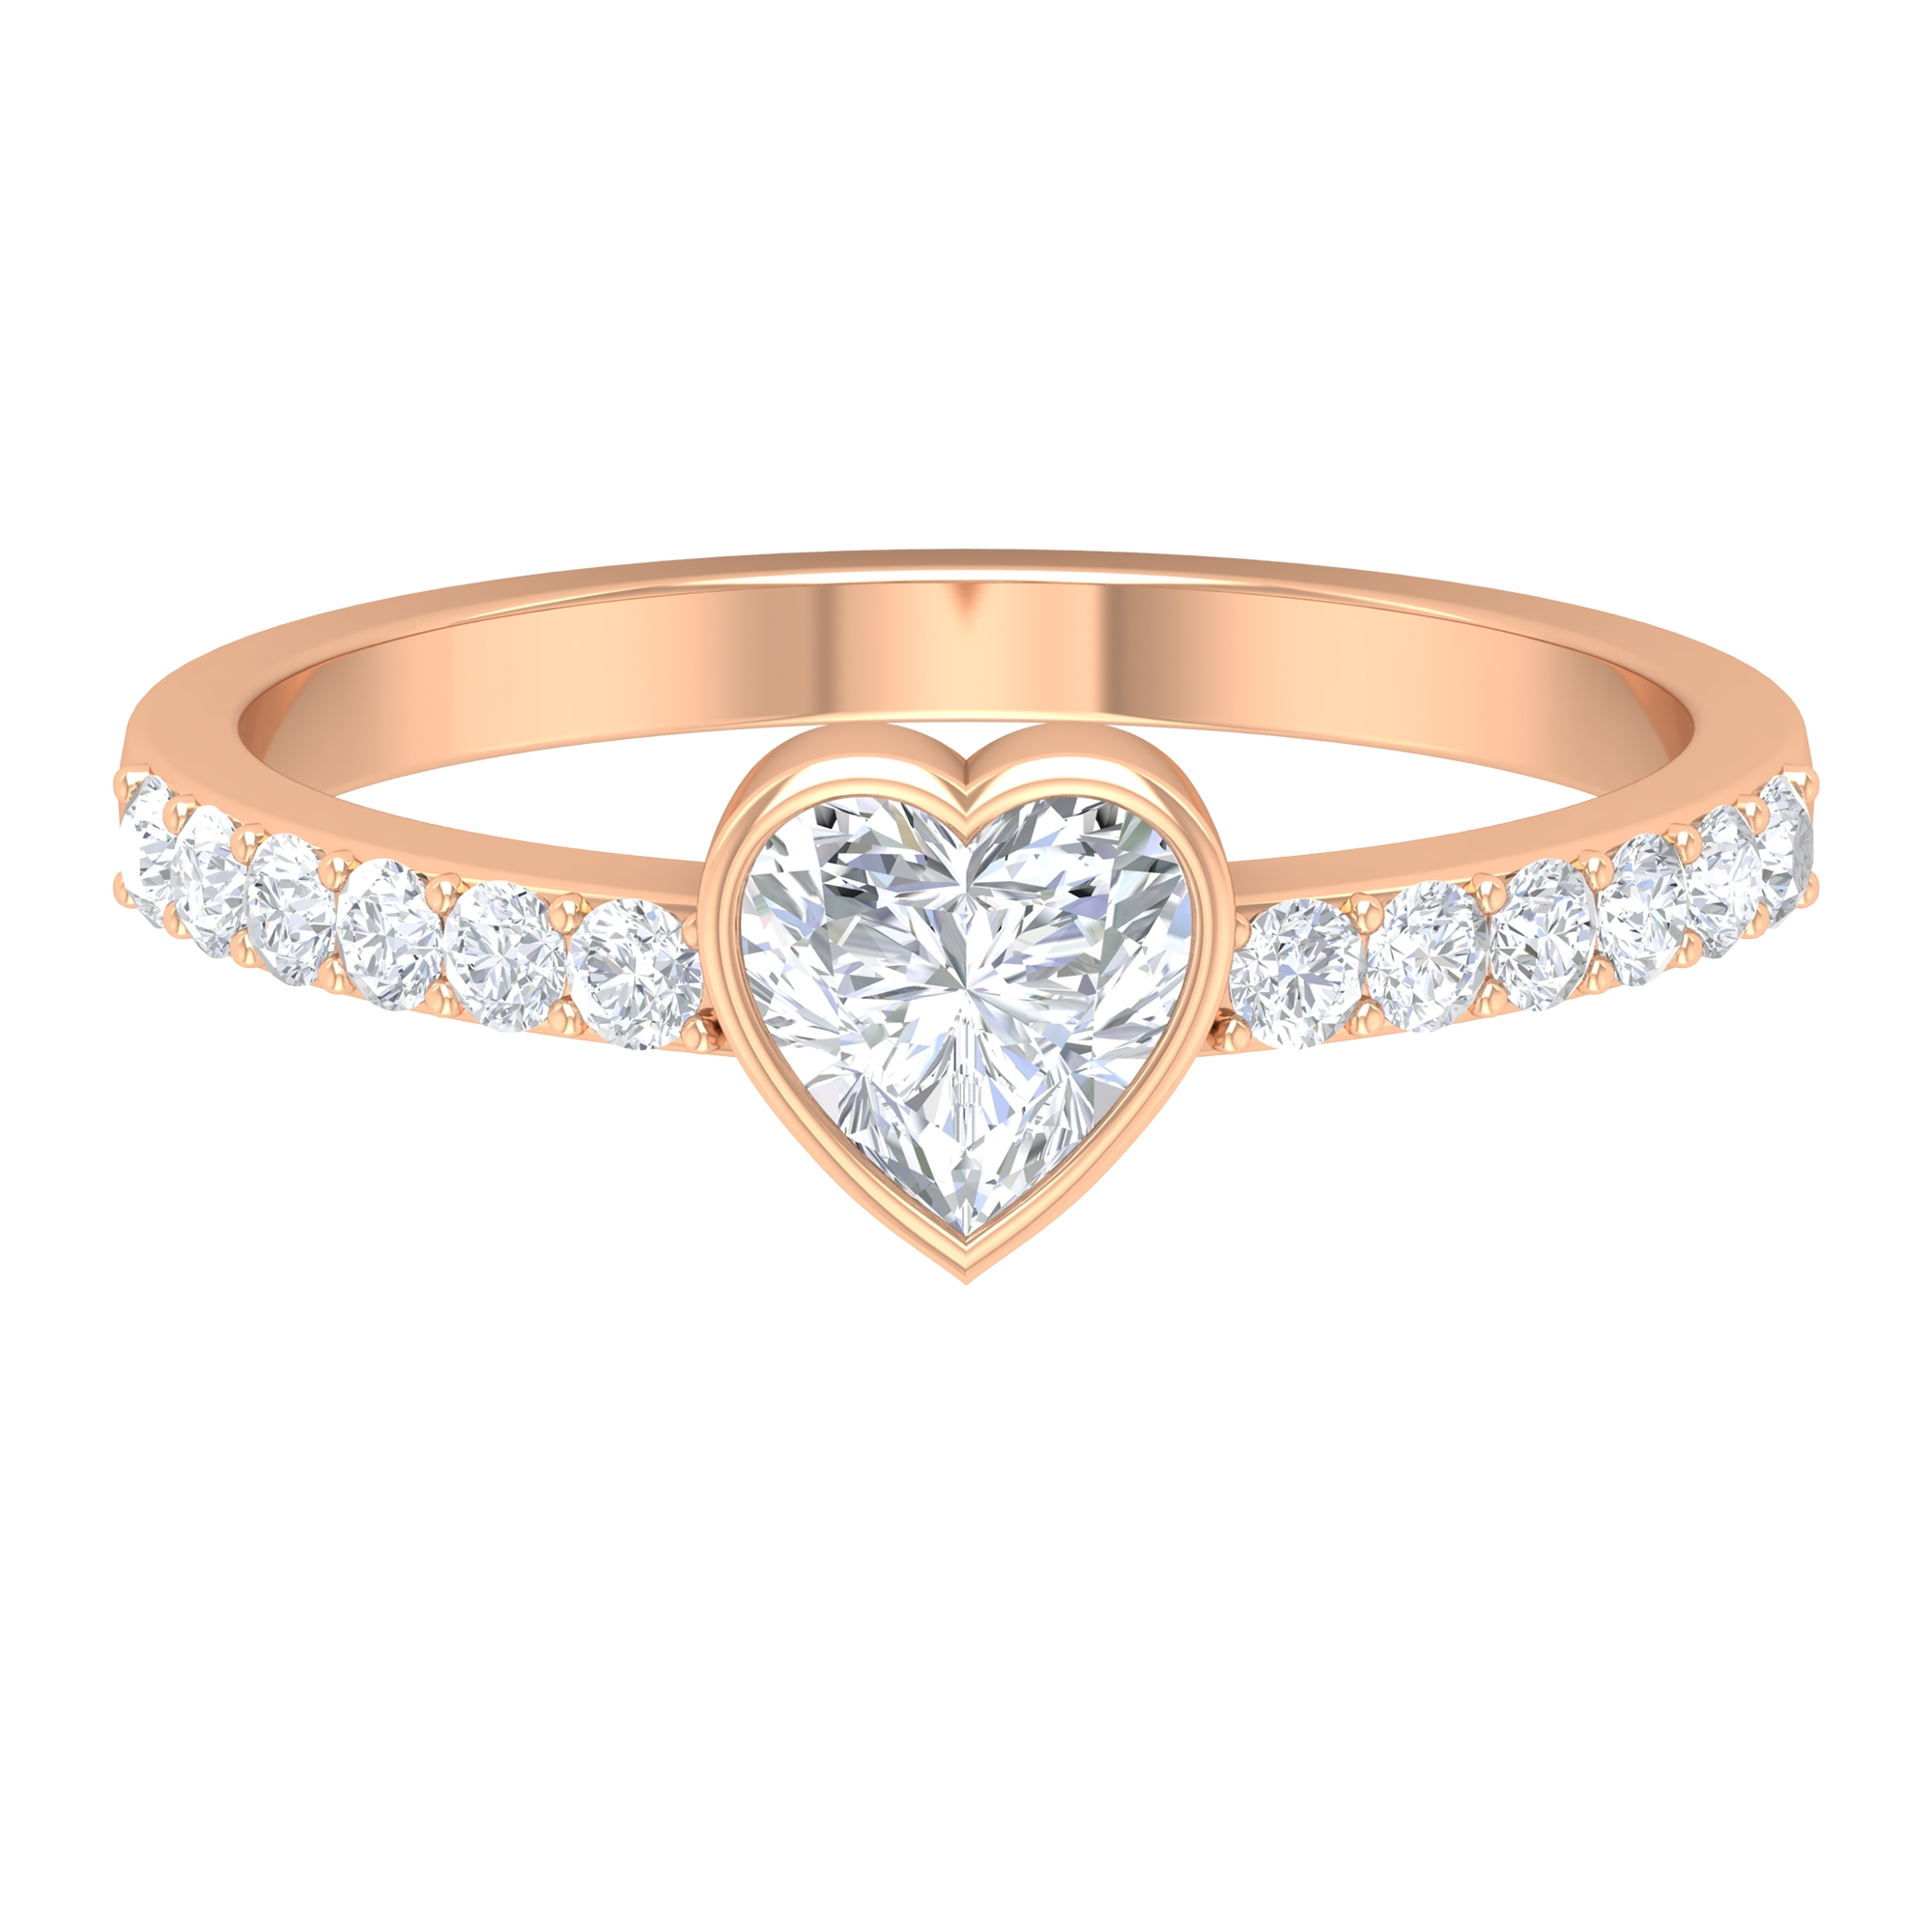 3/4 CT Heart Shape Diamond Solitaire Ring in Bezel Setting with Surface Side Stones